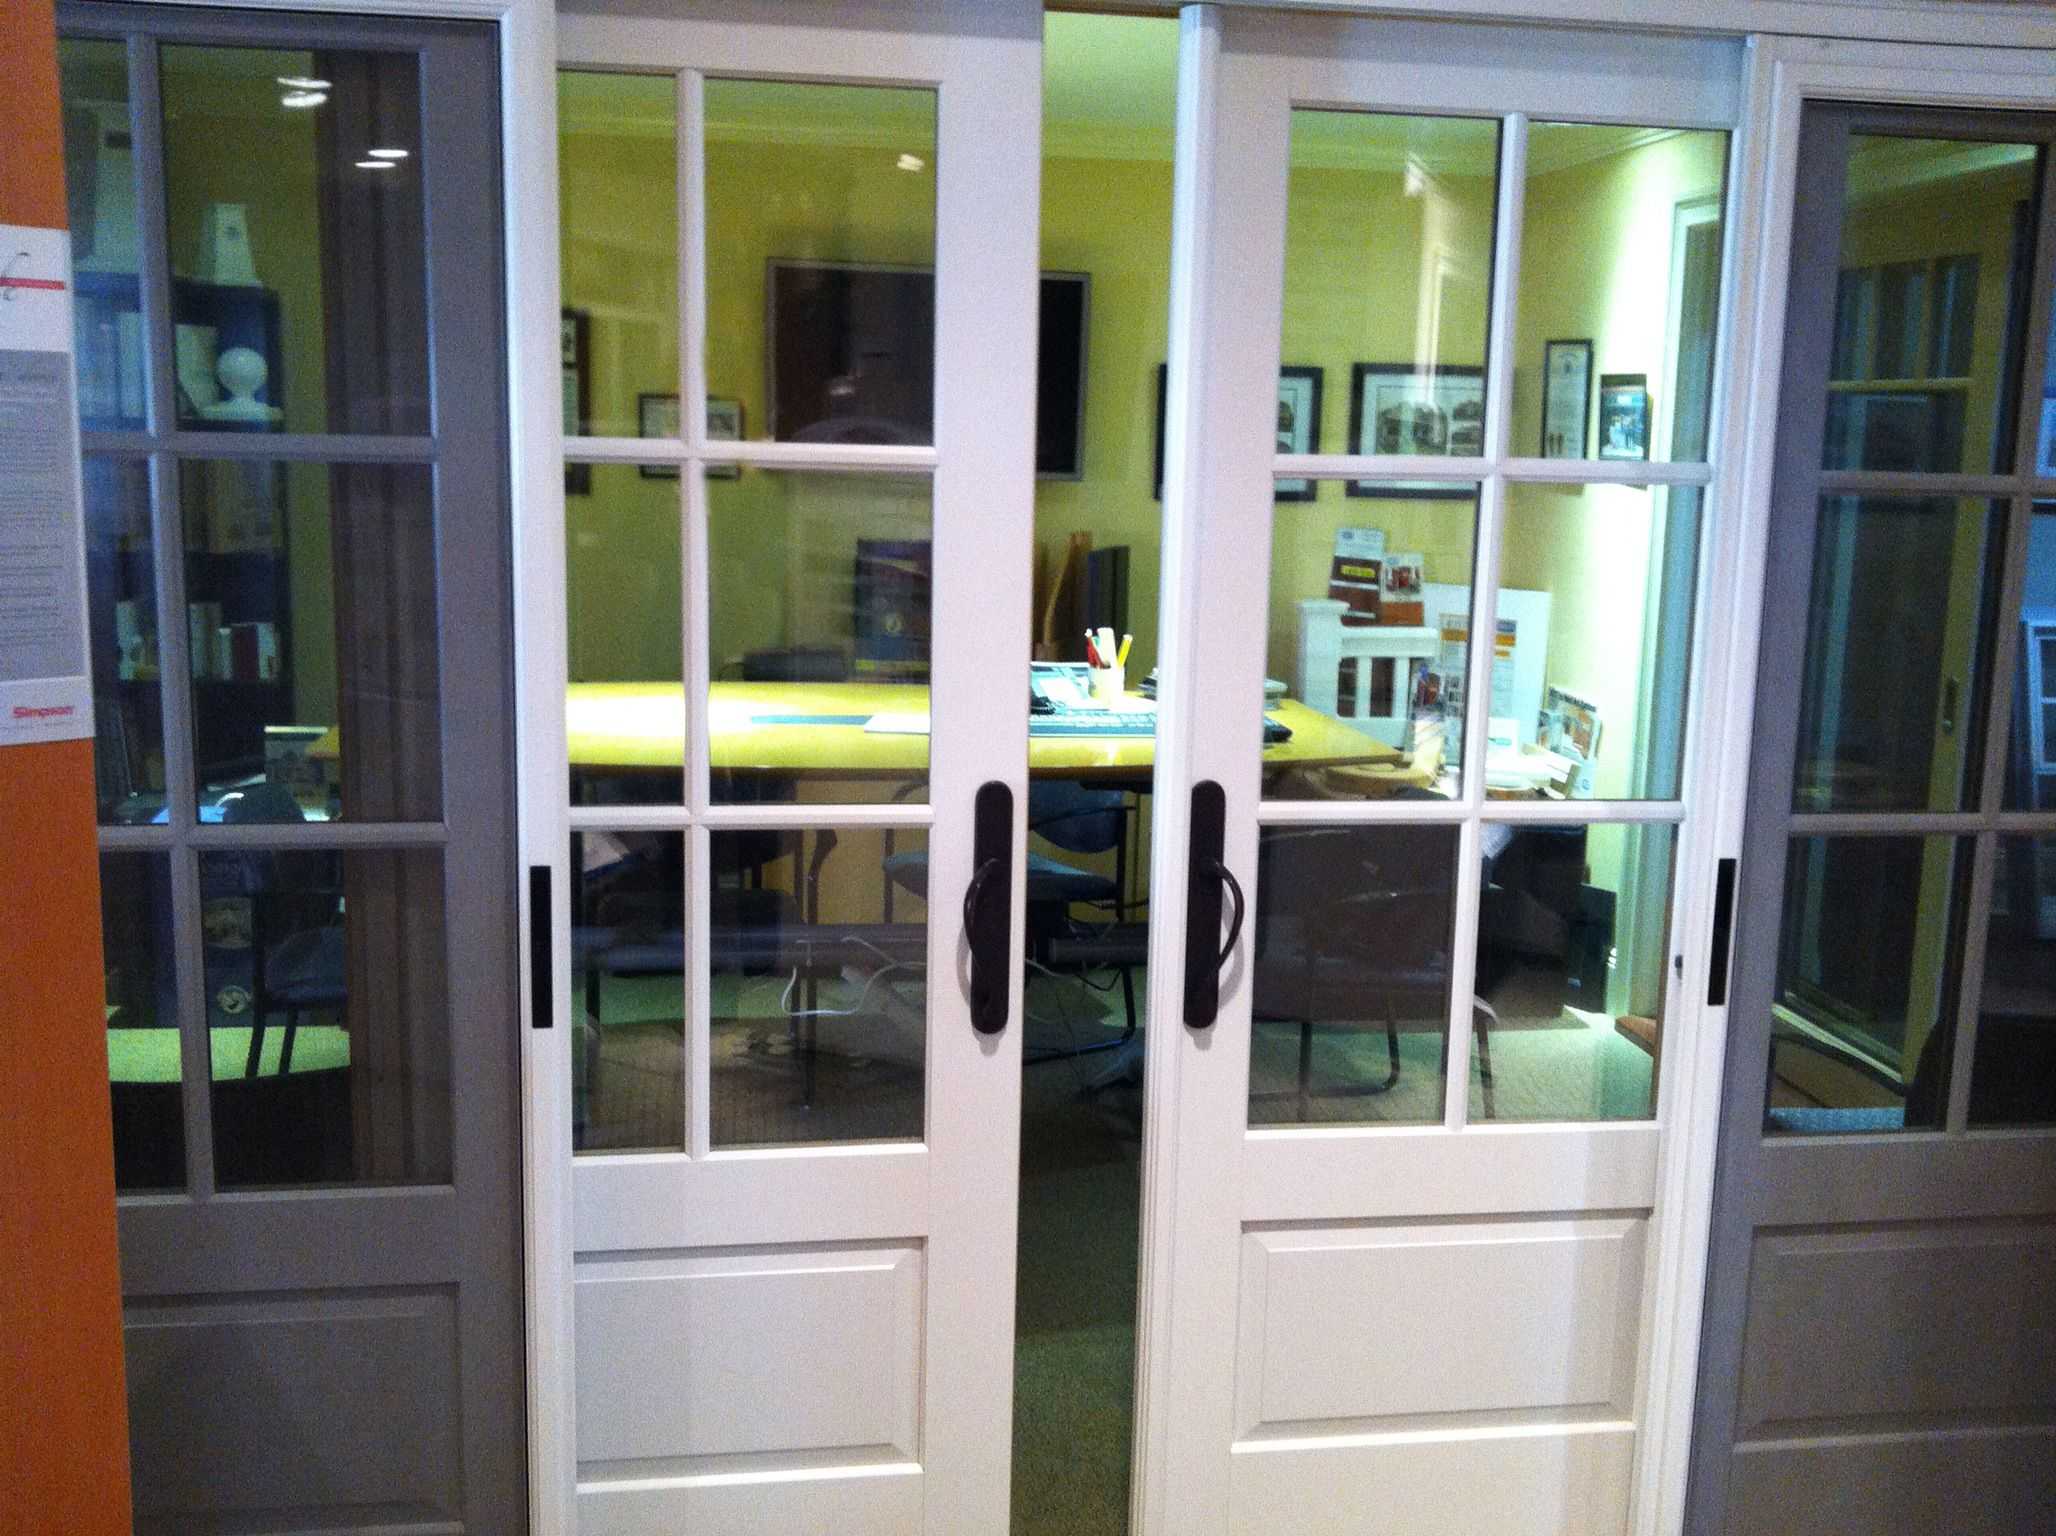 The Marvin Ultimate Bi Parting Sliding French Door In Our Showroom In Asbury Park Nj Doors